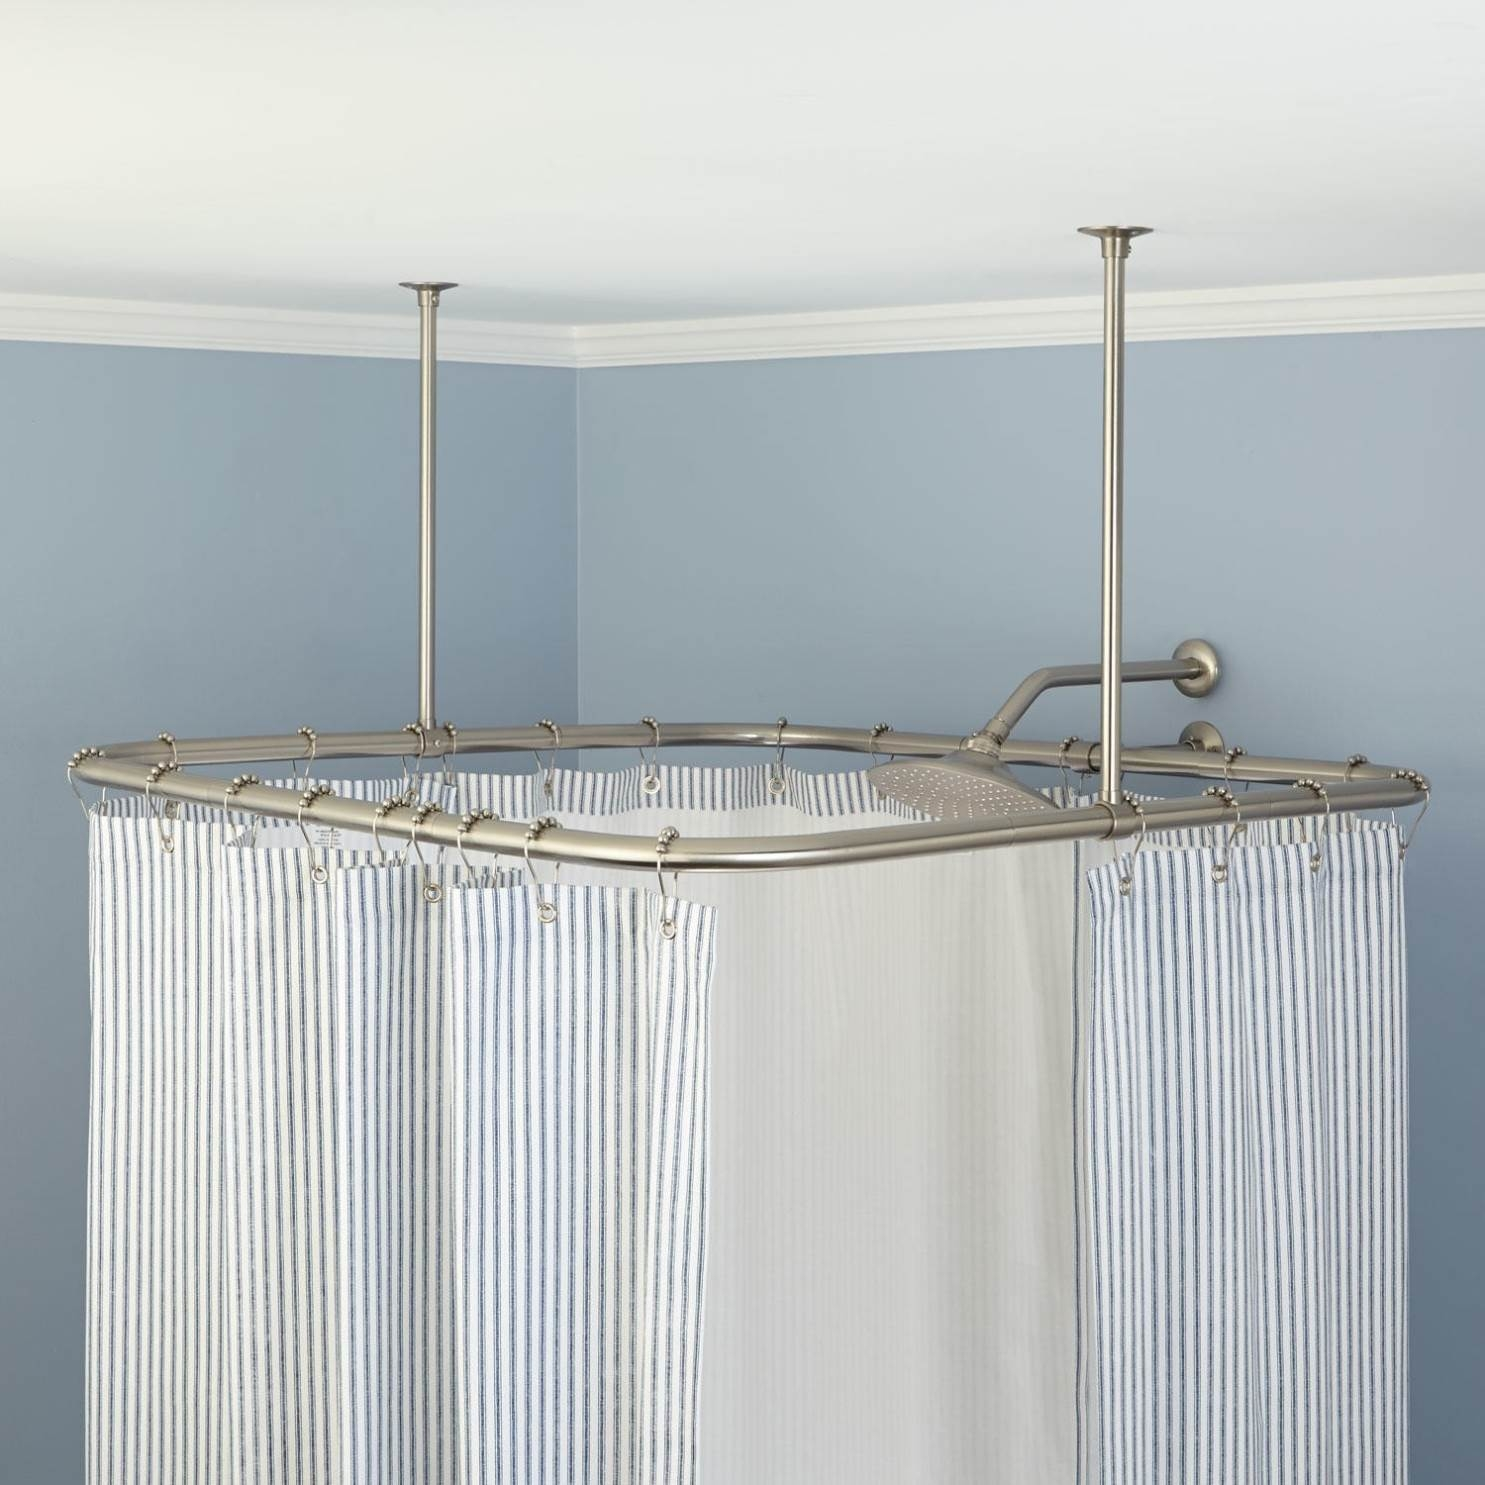 Ceiling Mounted Shower Curtain Rods Home Hold Design Reference Inside L Curtain Rods (Image 4 of 25)